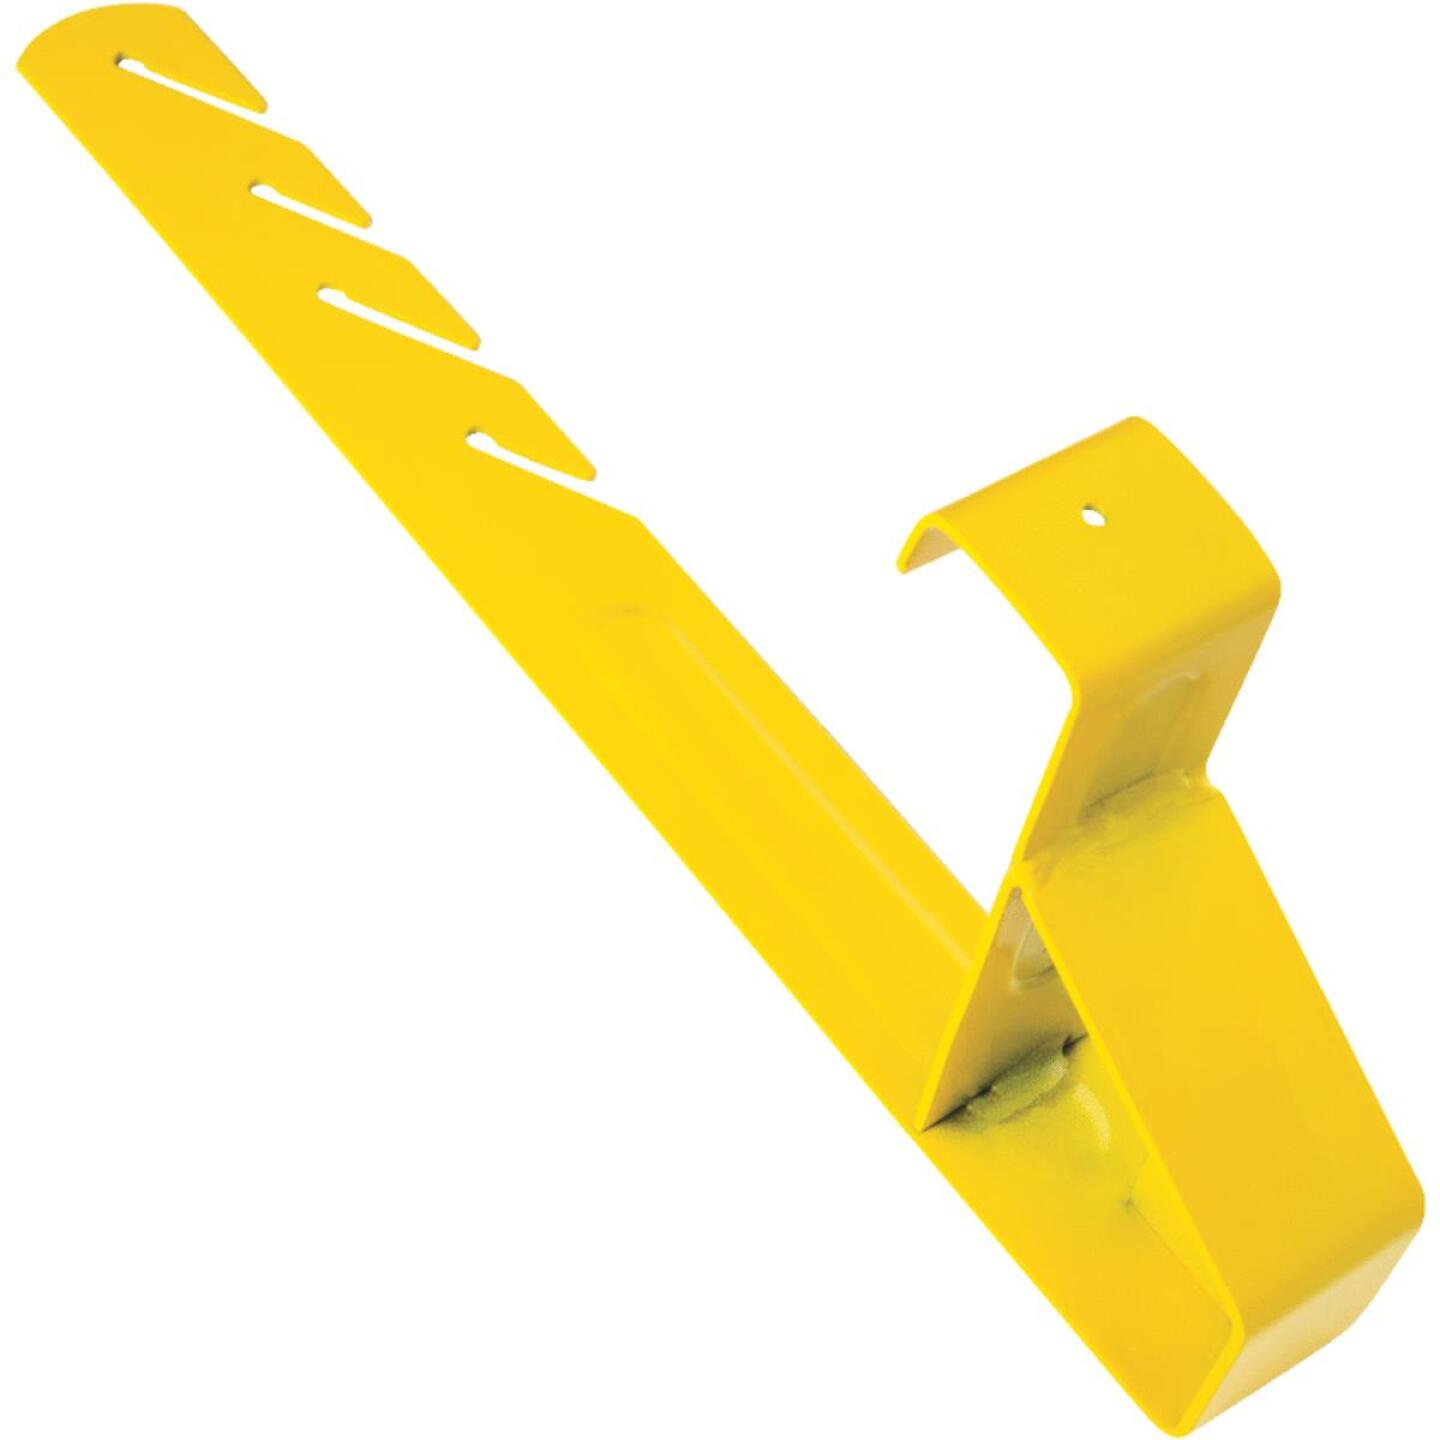 Acro 19 In. 2x6 90 Degree Fixed Roof Bracket Image 1